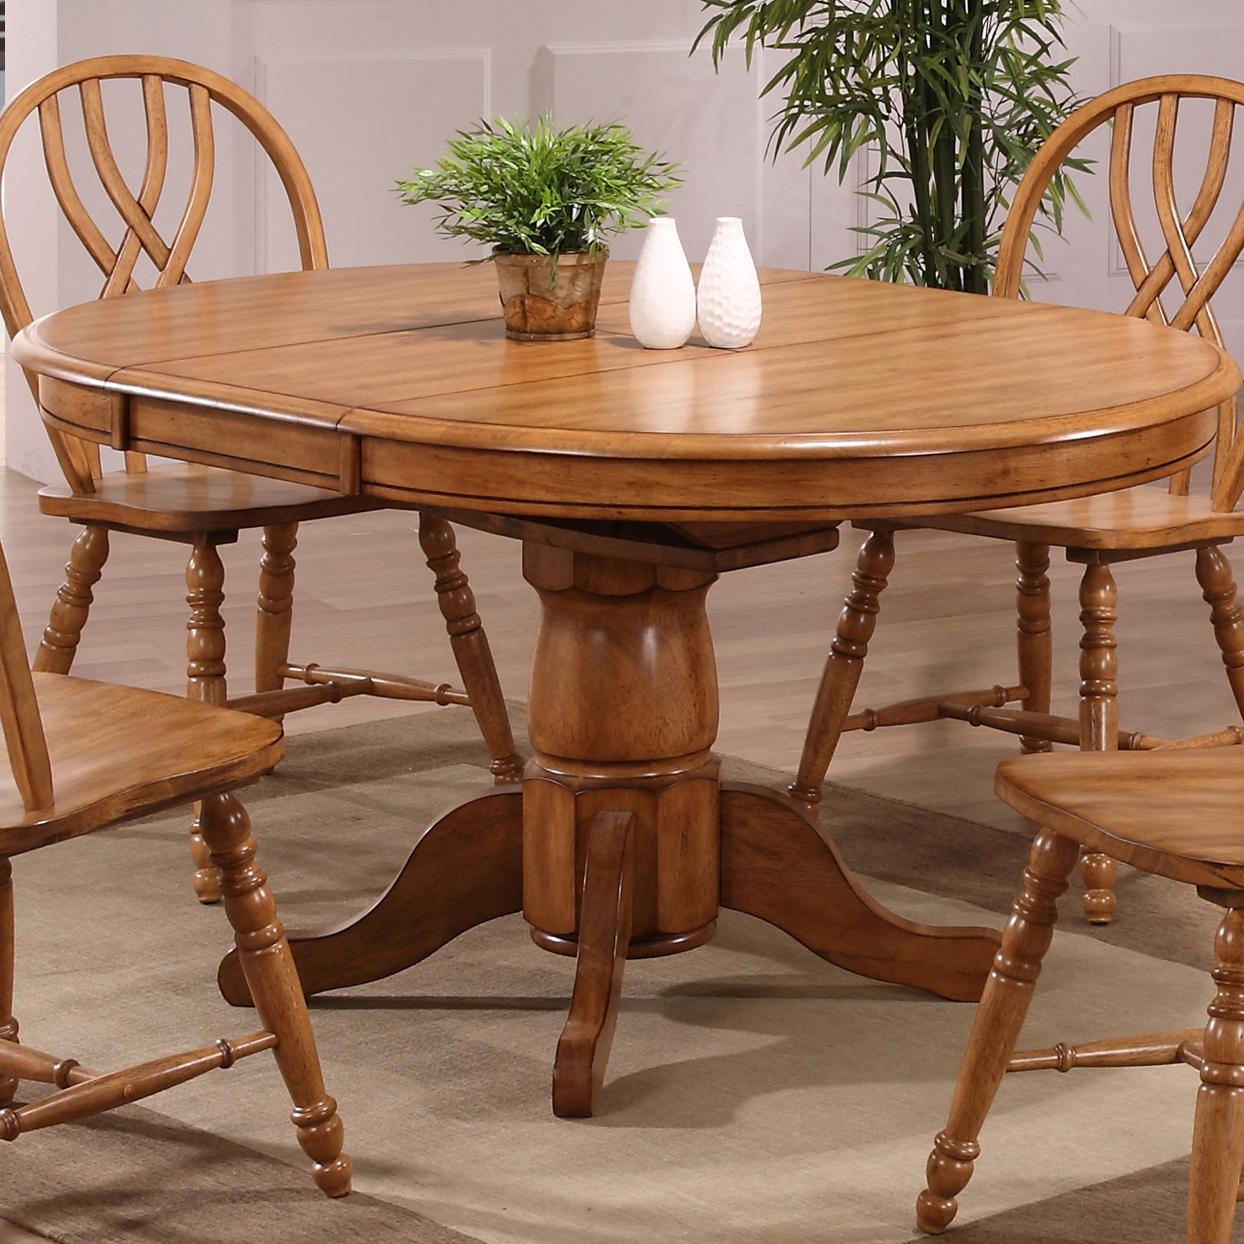 E.C.I. Furniture Dining Solid Oak Single Pedestal Dining